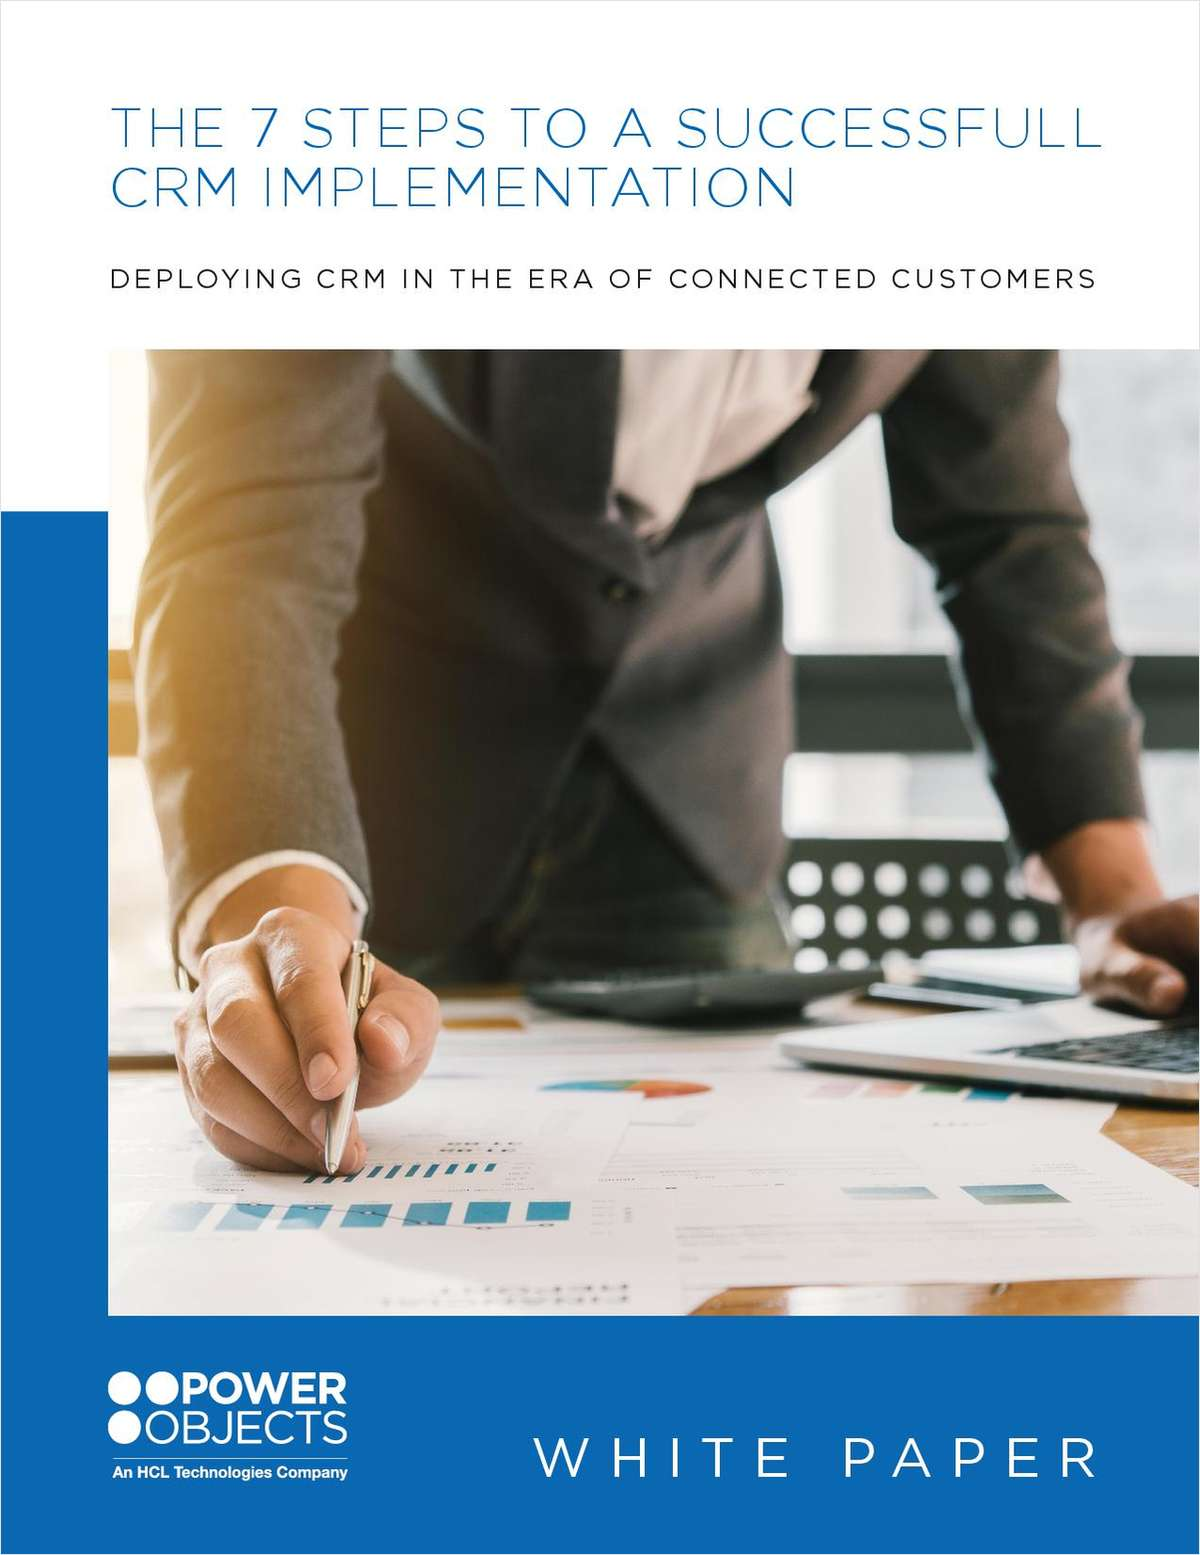 The 7 Steps to a Successful CRM Implementation